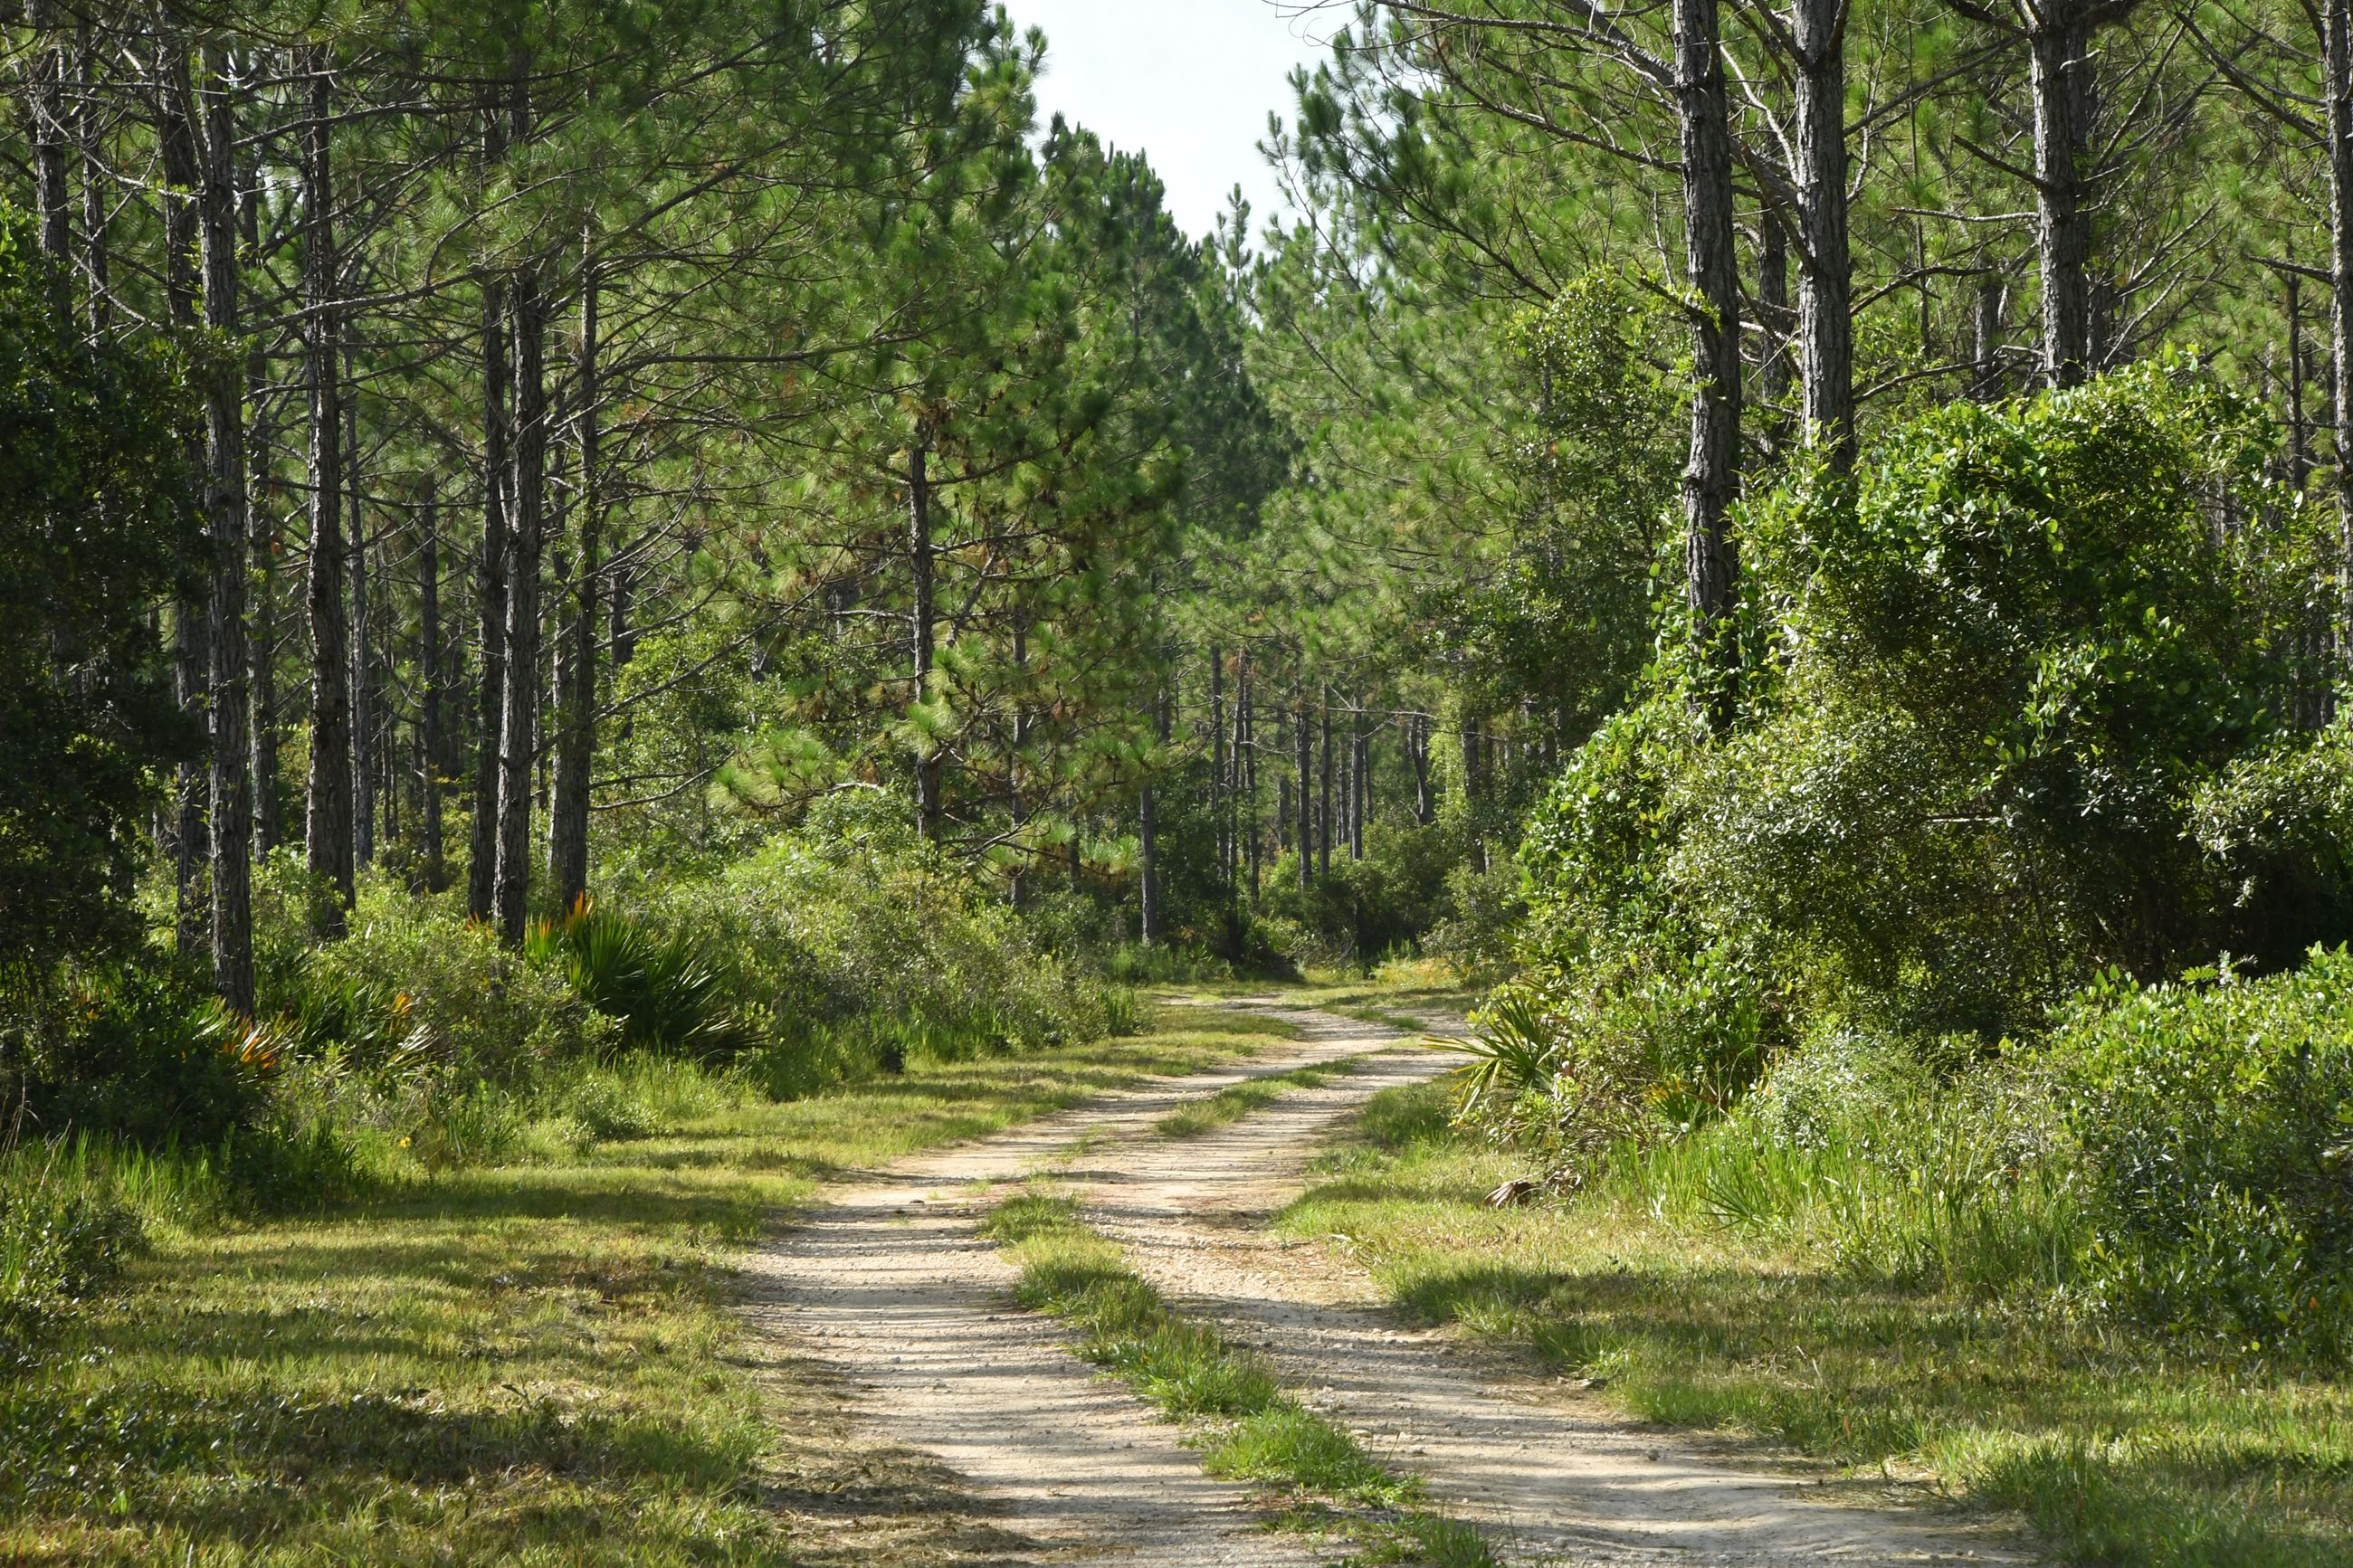 Dirt road windning through tall trees